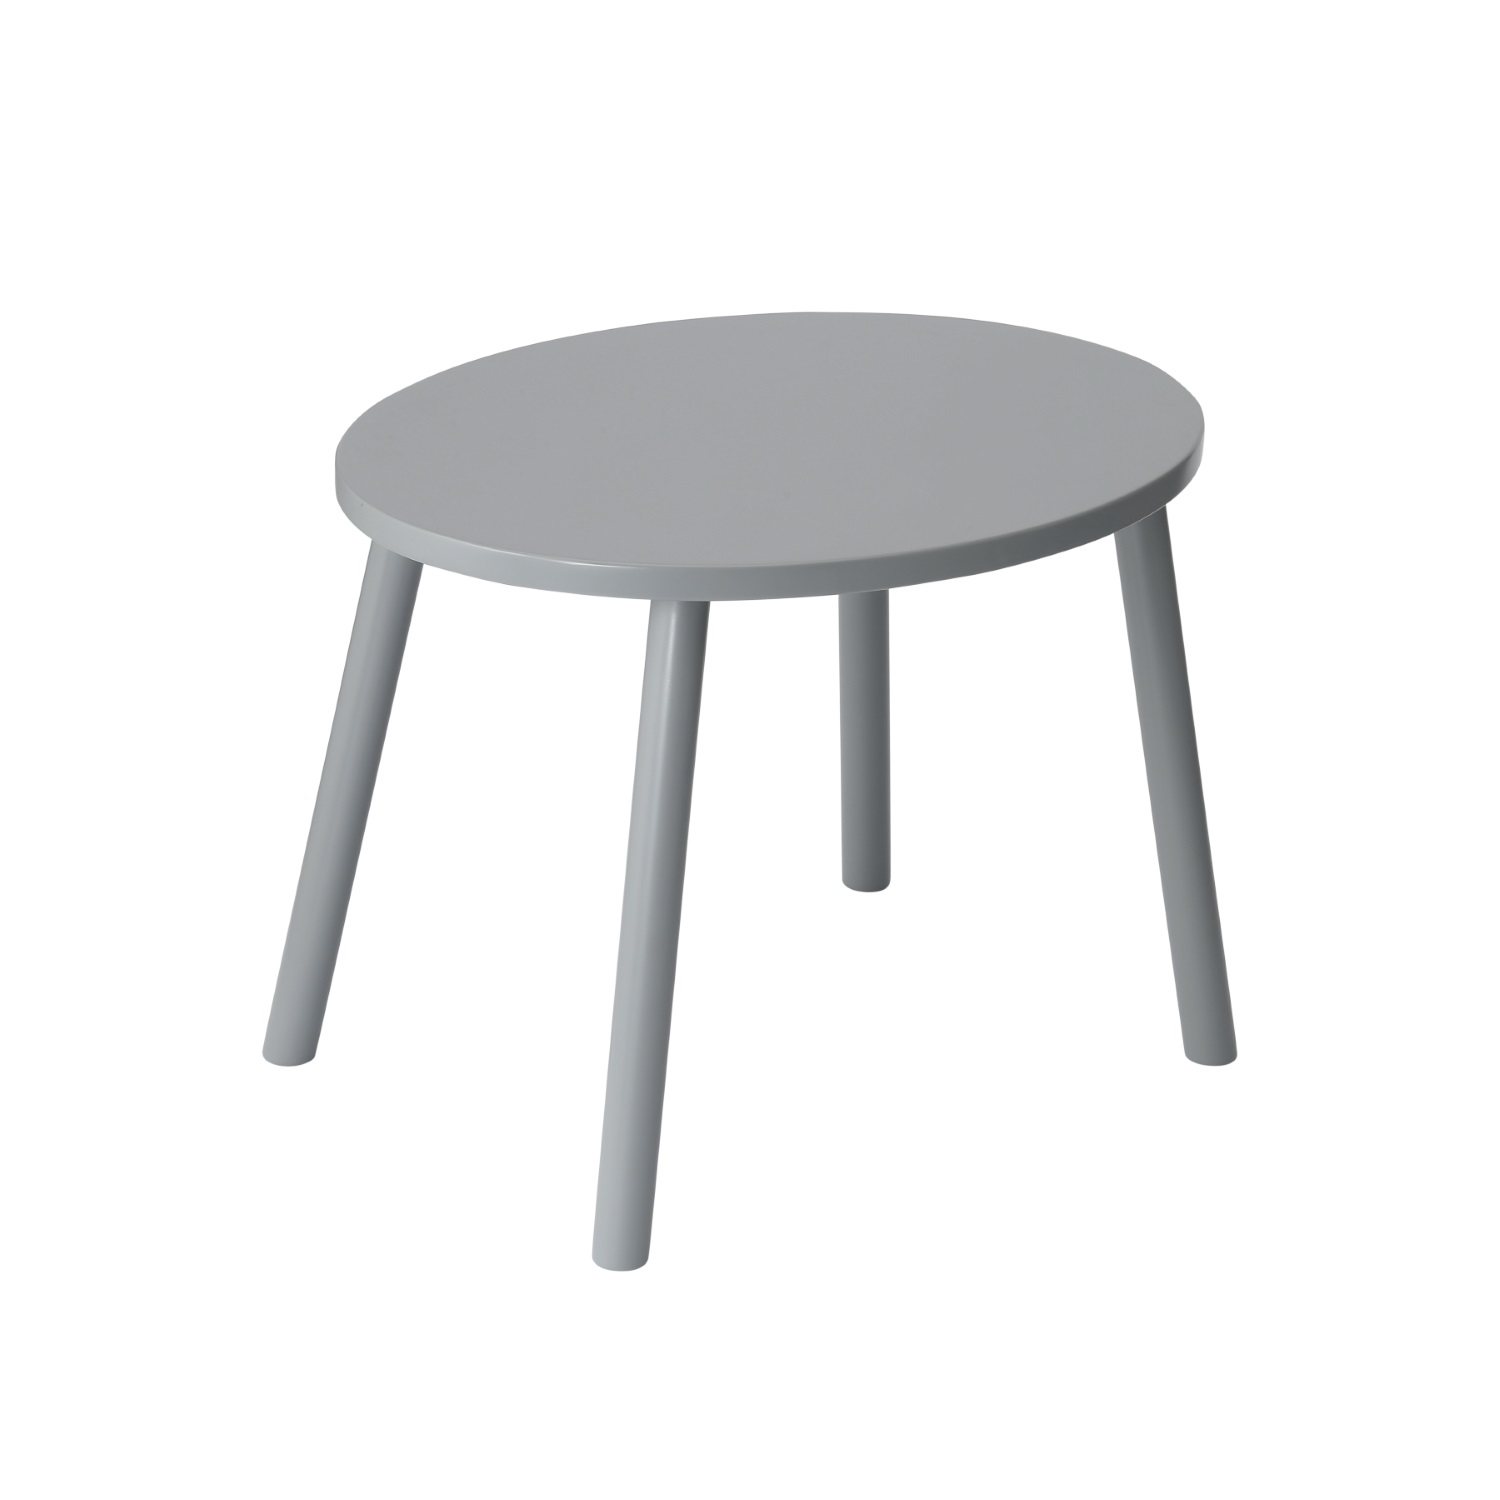 MOUSE TABLE GREY barnbord, Nofred